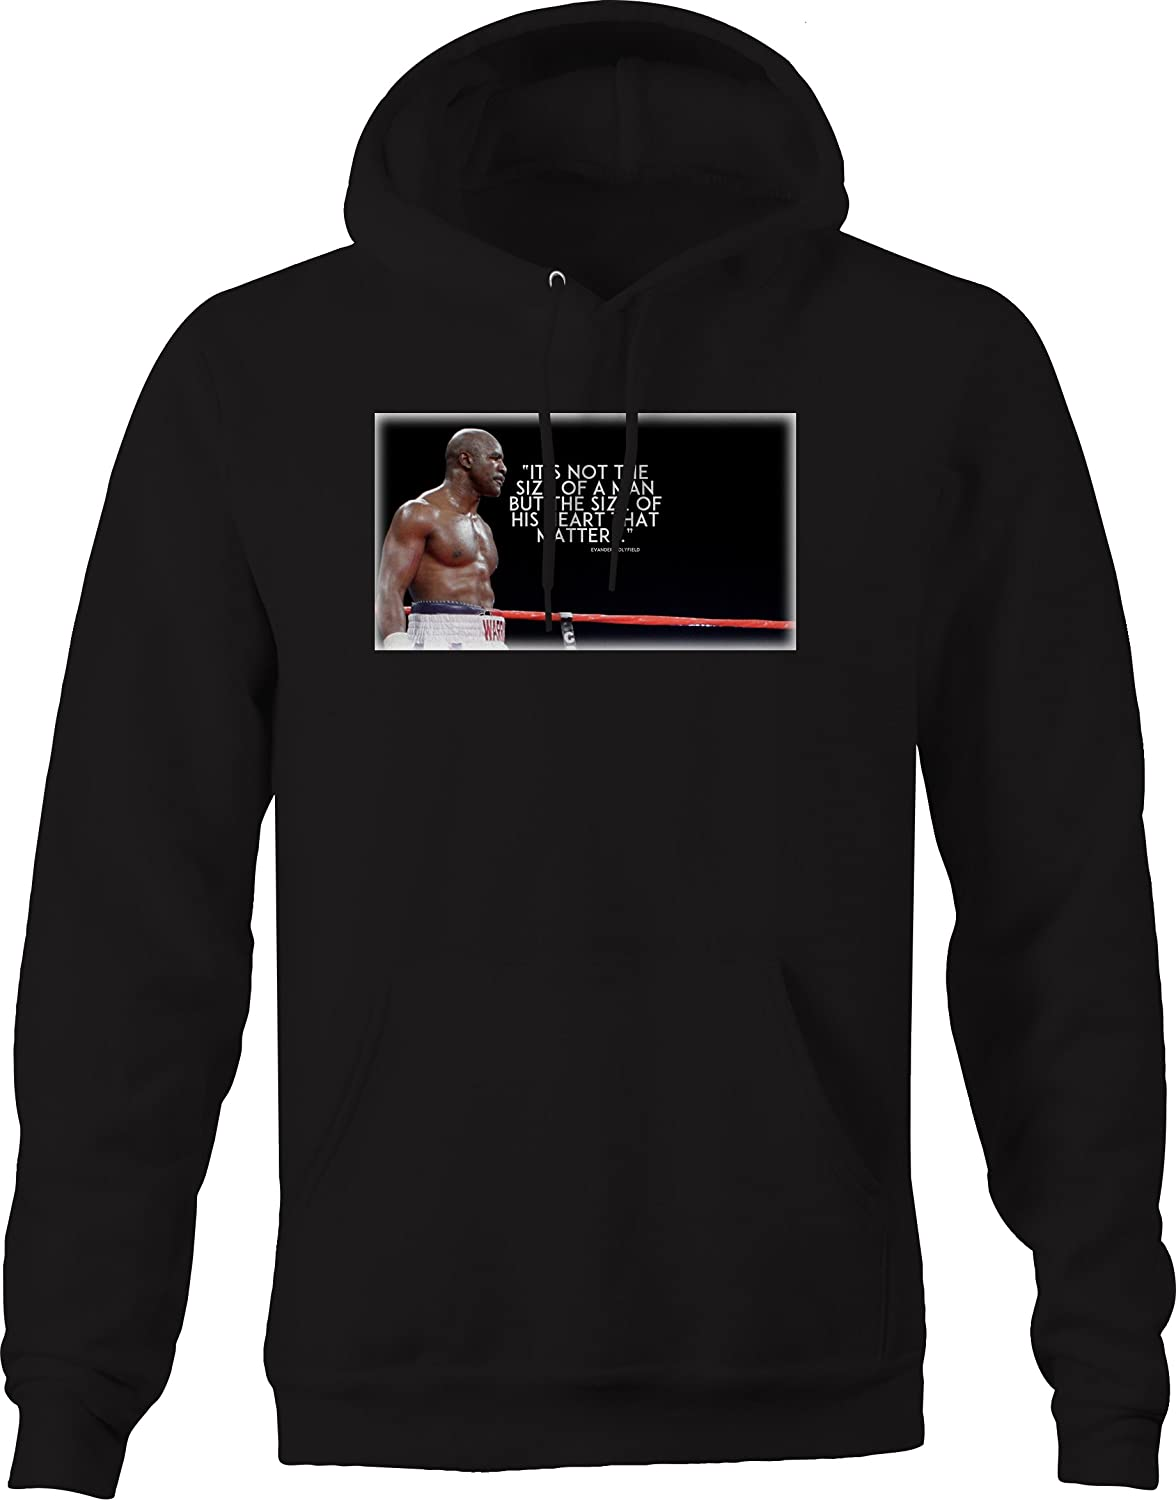 Bold Imprints Quote Holyfield Boxing Size of The Man Heart Matters Graphic Hoodie for Men